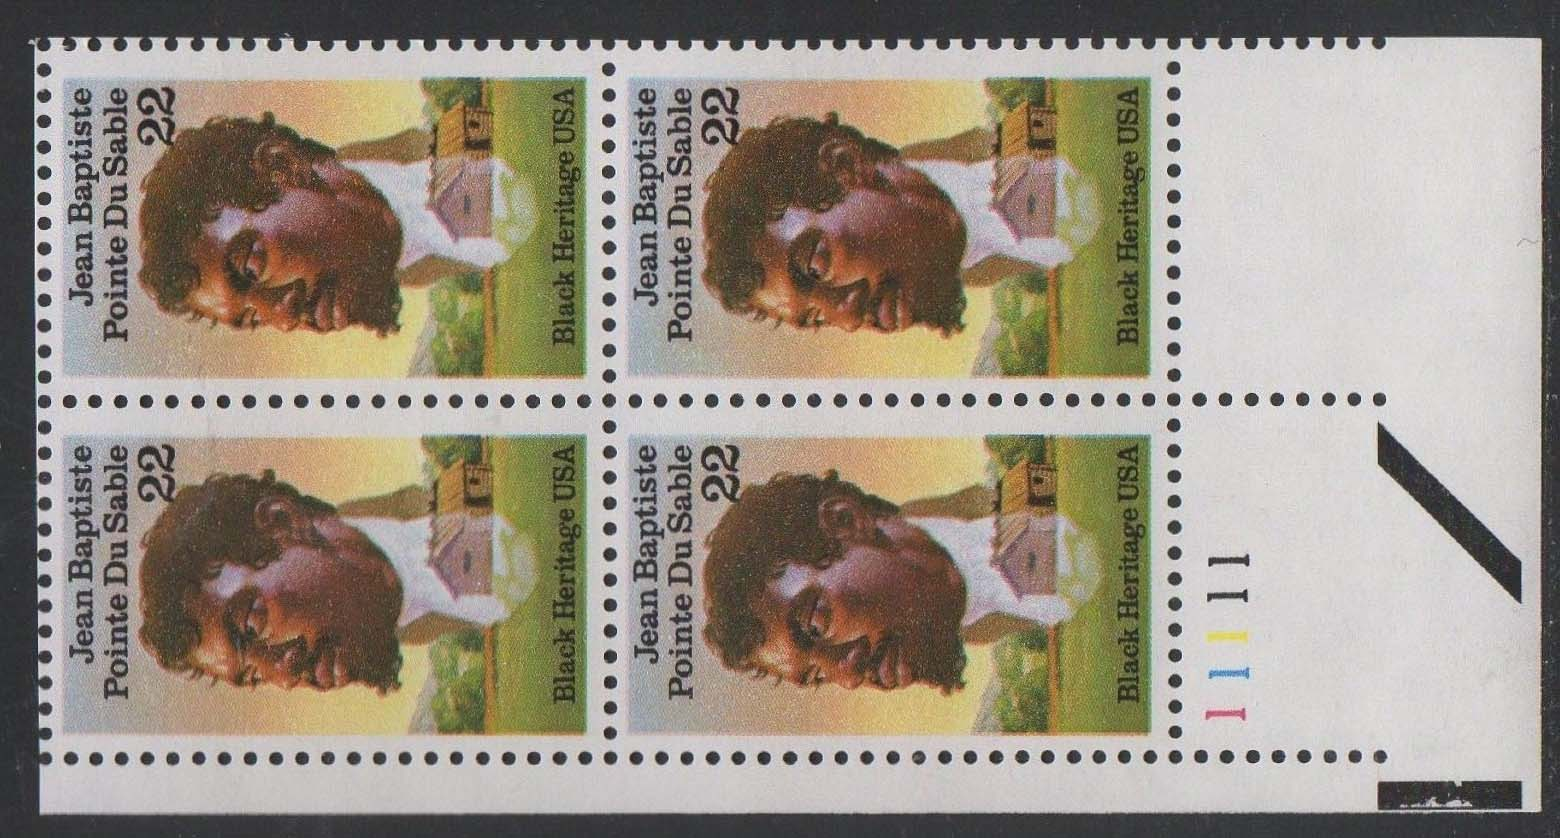 "Scott 2249 Plate Block (22 cents) <p> <a href=""/images/USA-Scott-2249-PB.jpg""><font color=green><b>View the image</a></b></font>"